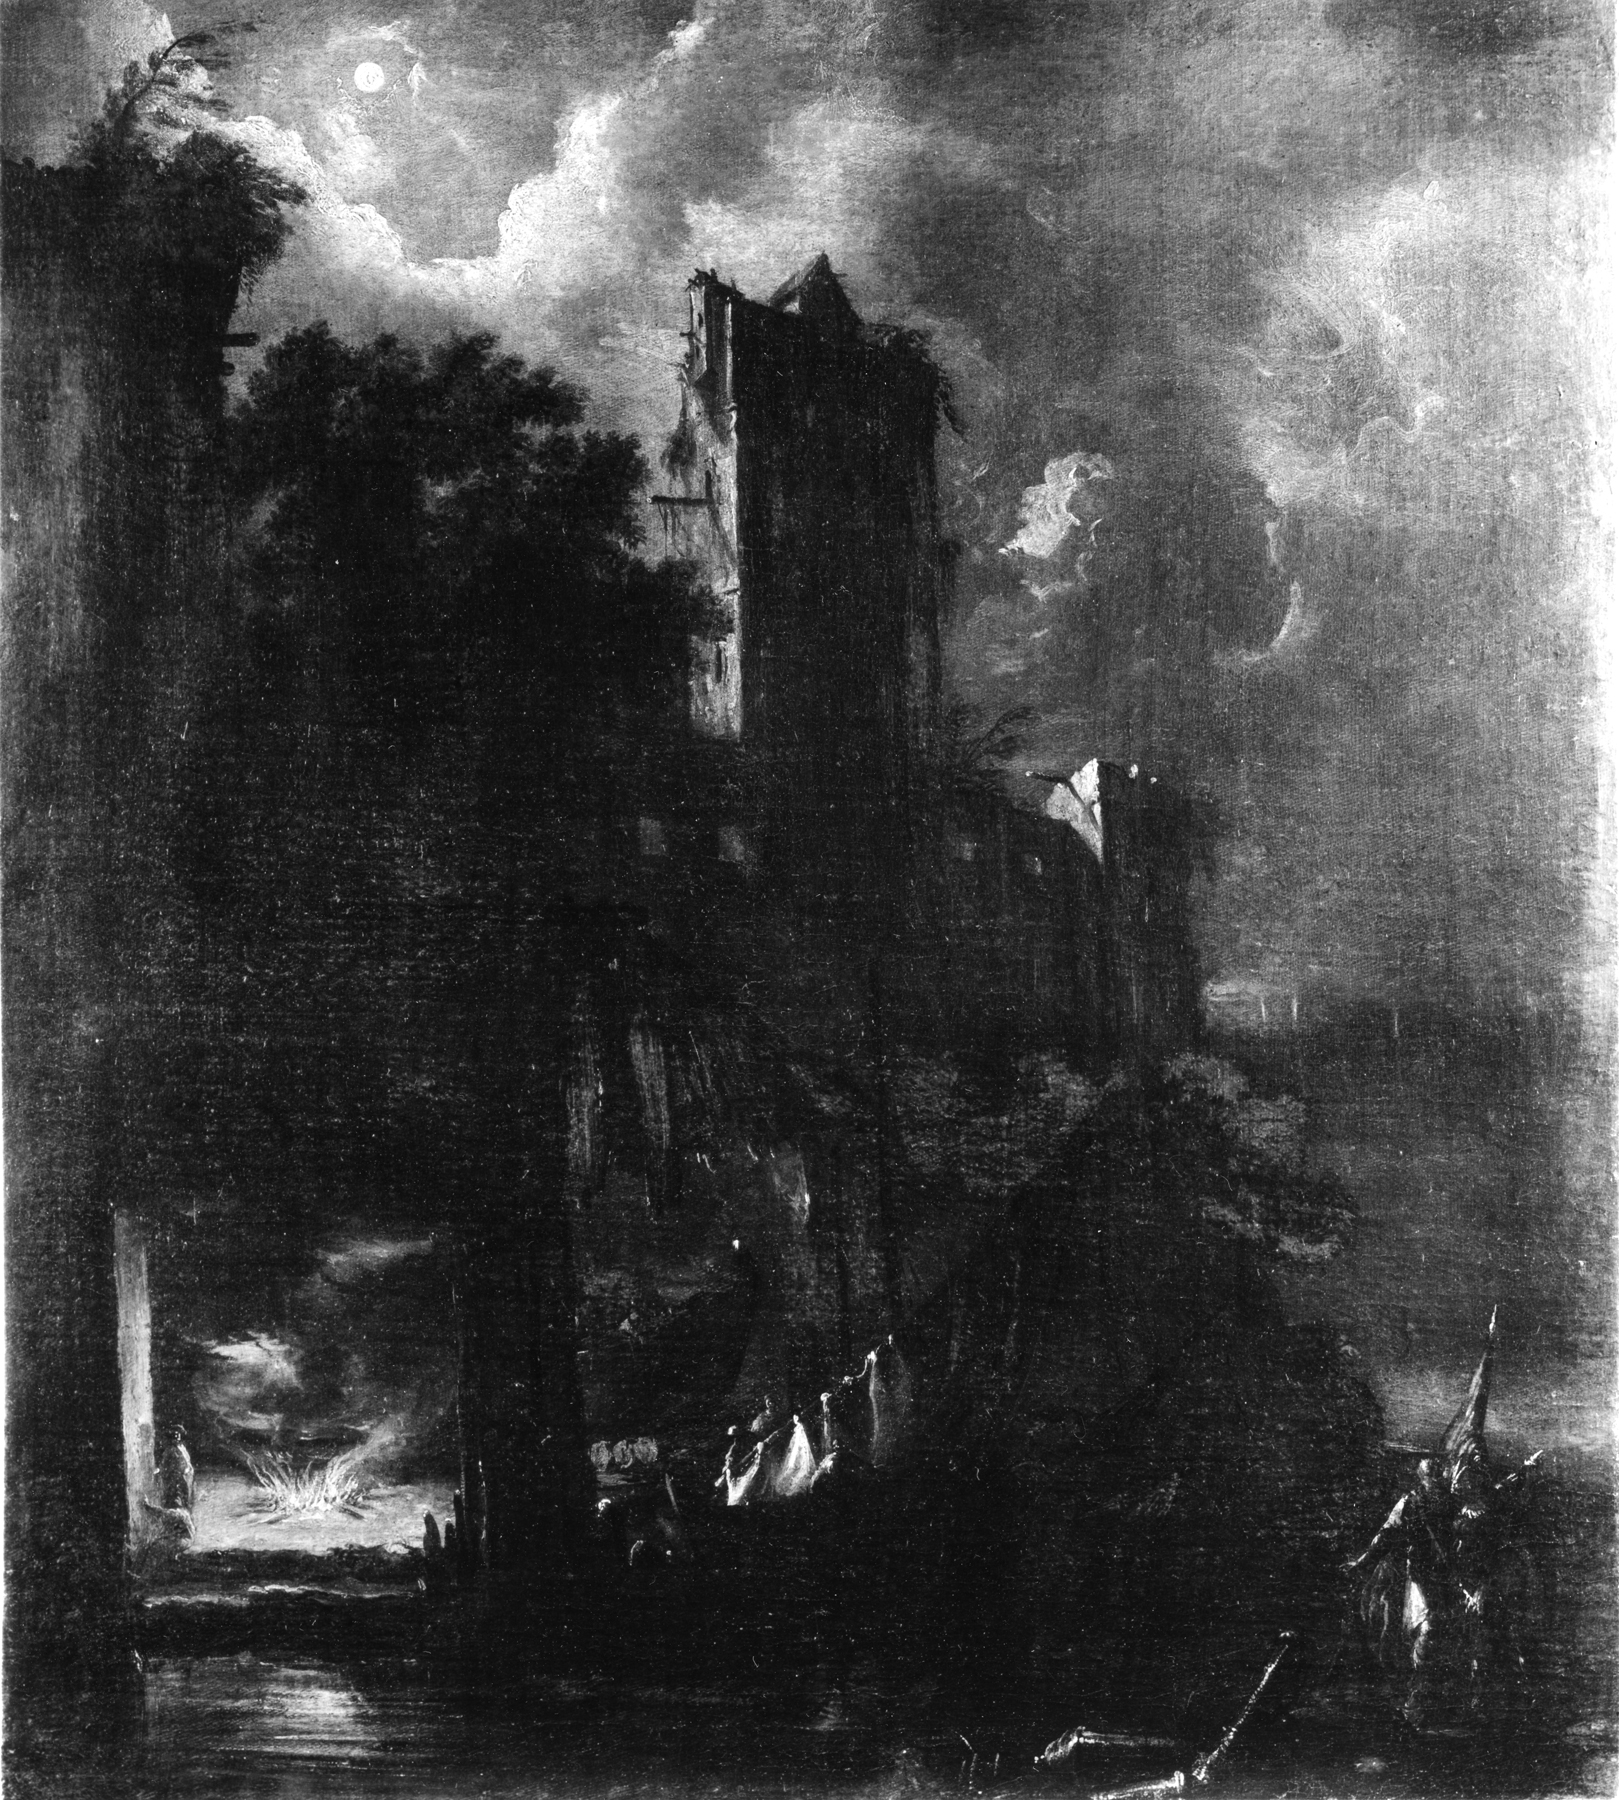 "<a href=""http://commons.wikimedia.org/wiki/File%3ABartolomeo_Pedon_-_Moonlit_Landscape_with_Ruined_Castle_-_Walters_37348.jpg"">via Wikimedia Commons</a>"